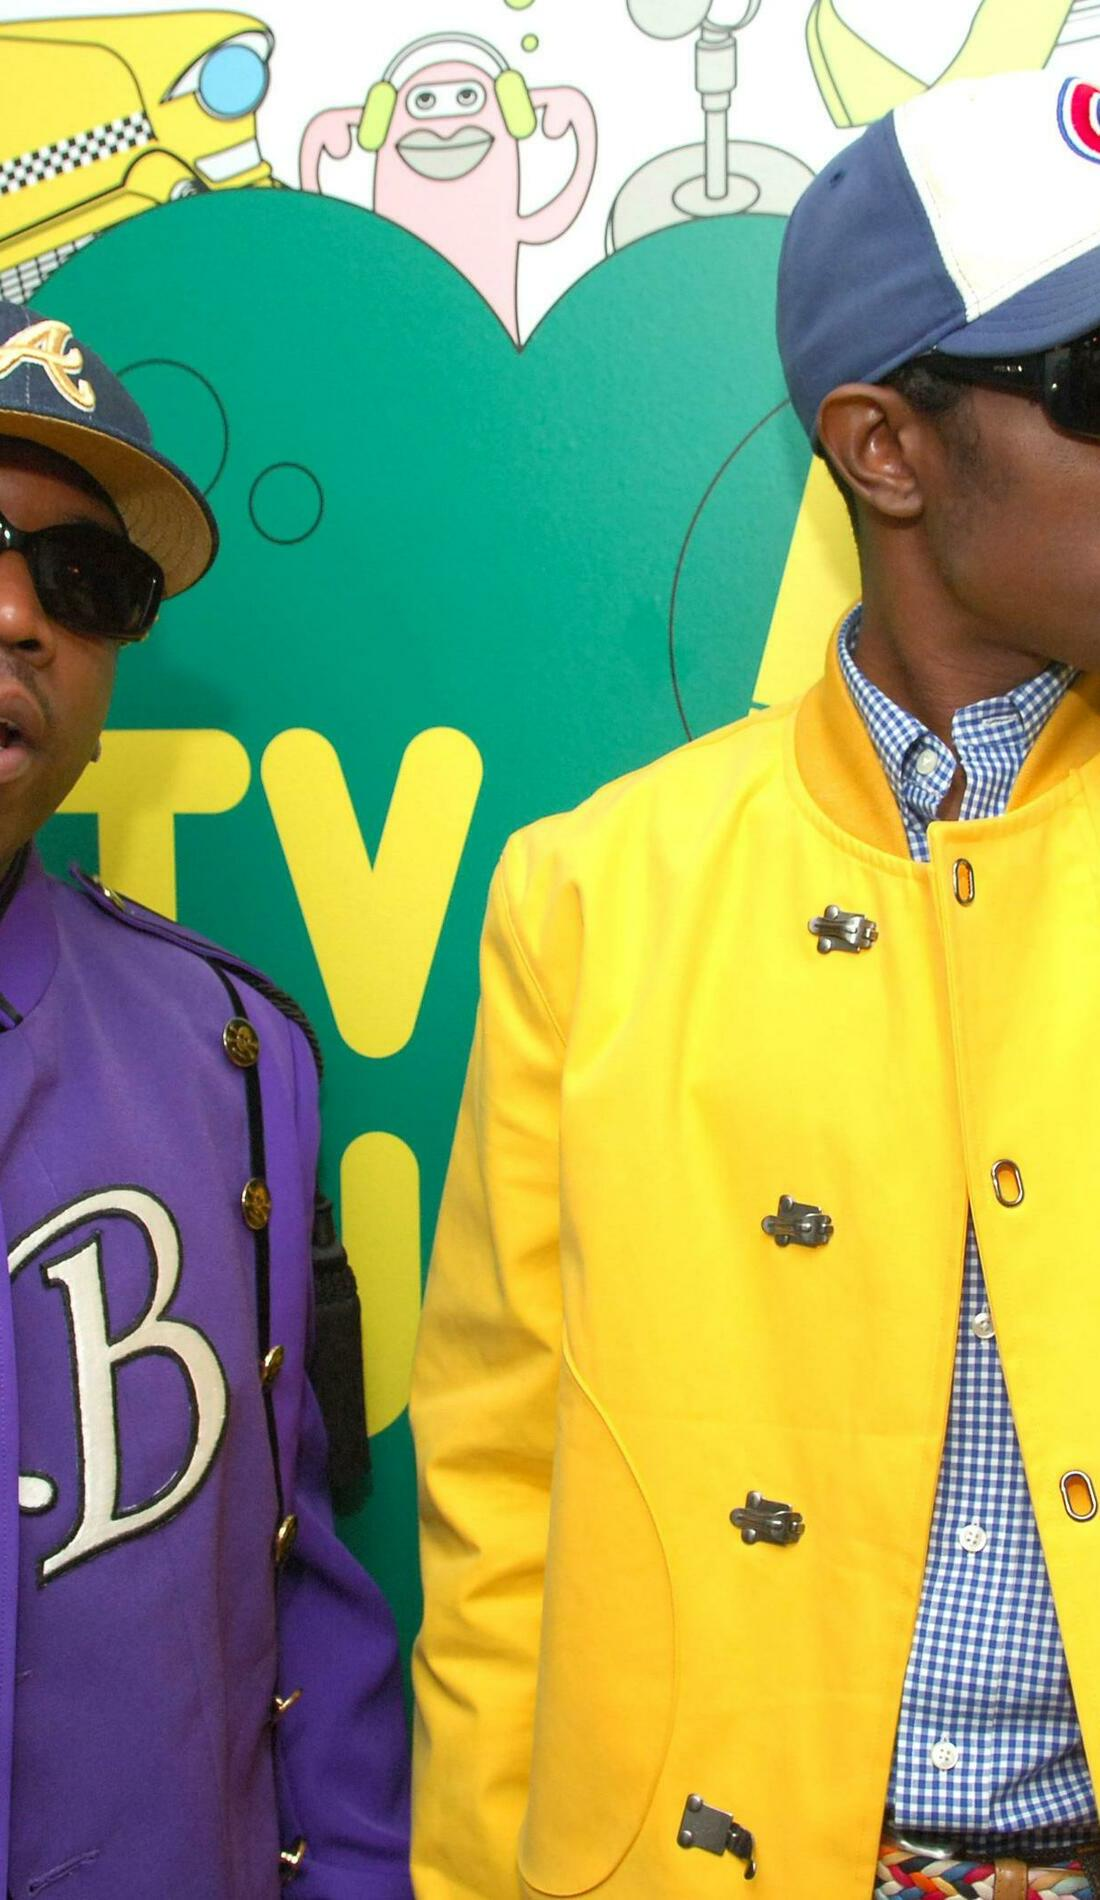 A Outkast live event